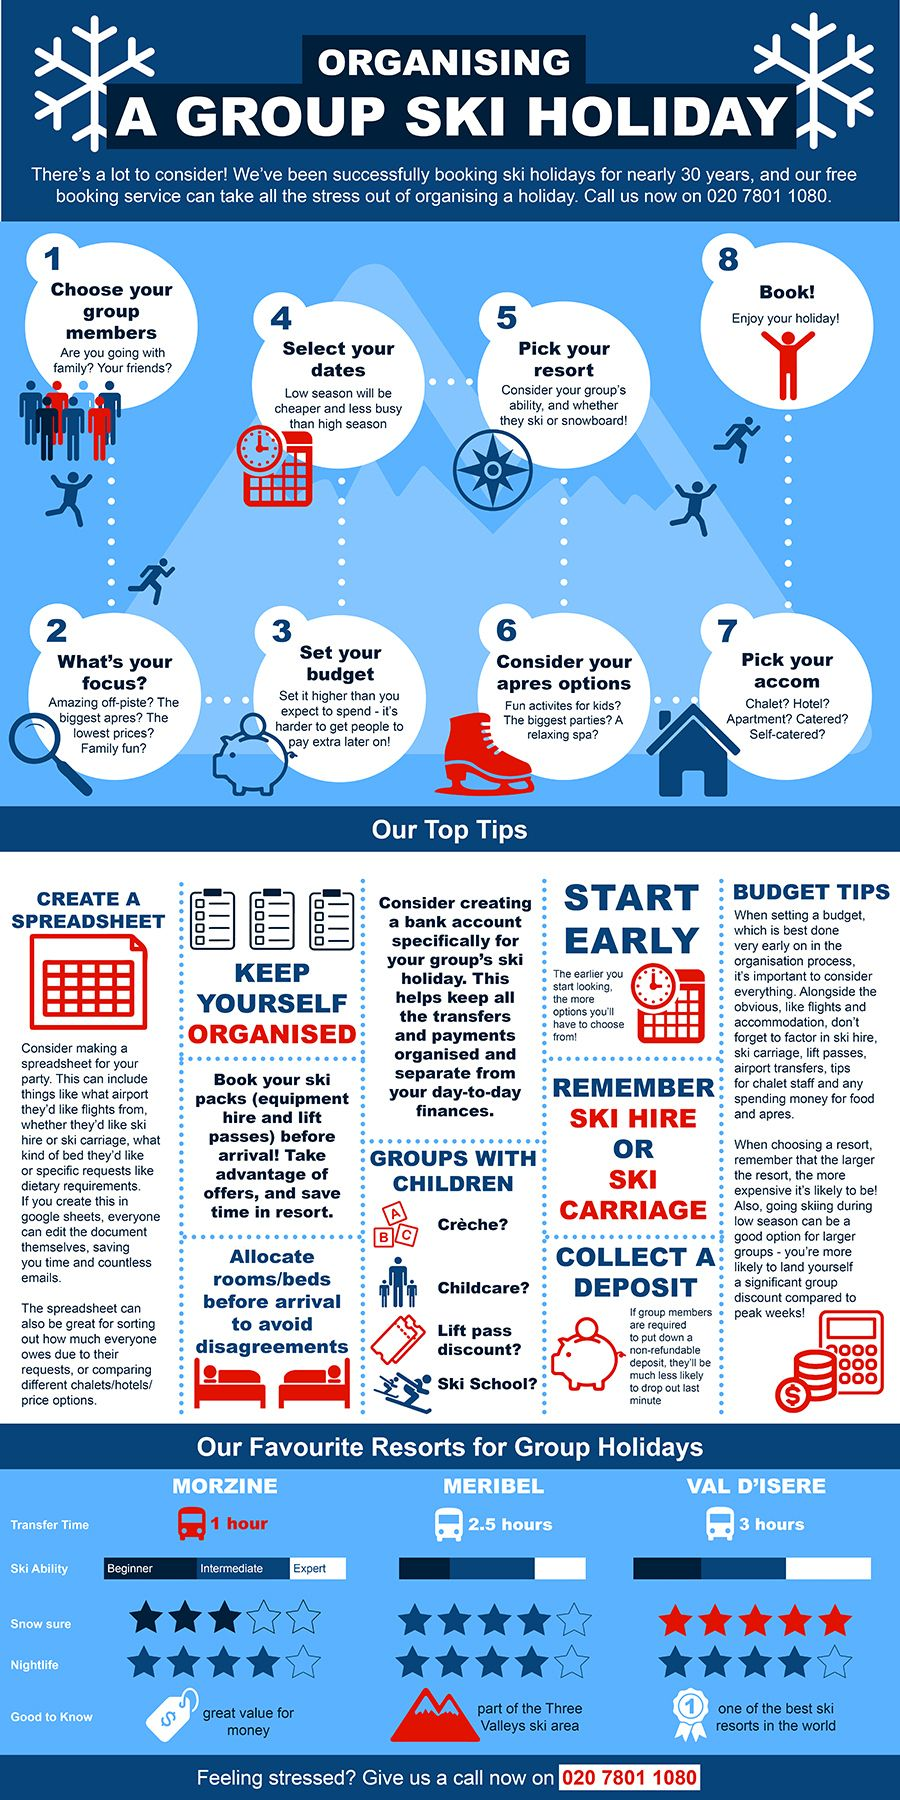 Alpine Answers Ski Infographic For Top Tips For Organising And Group Ski Holiday Or Group Ski Trip With Images Ski Holidays Holiday Insurance Ski Trip